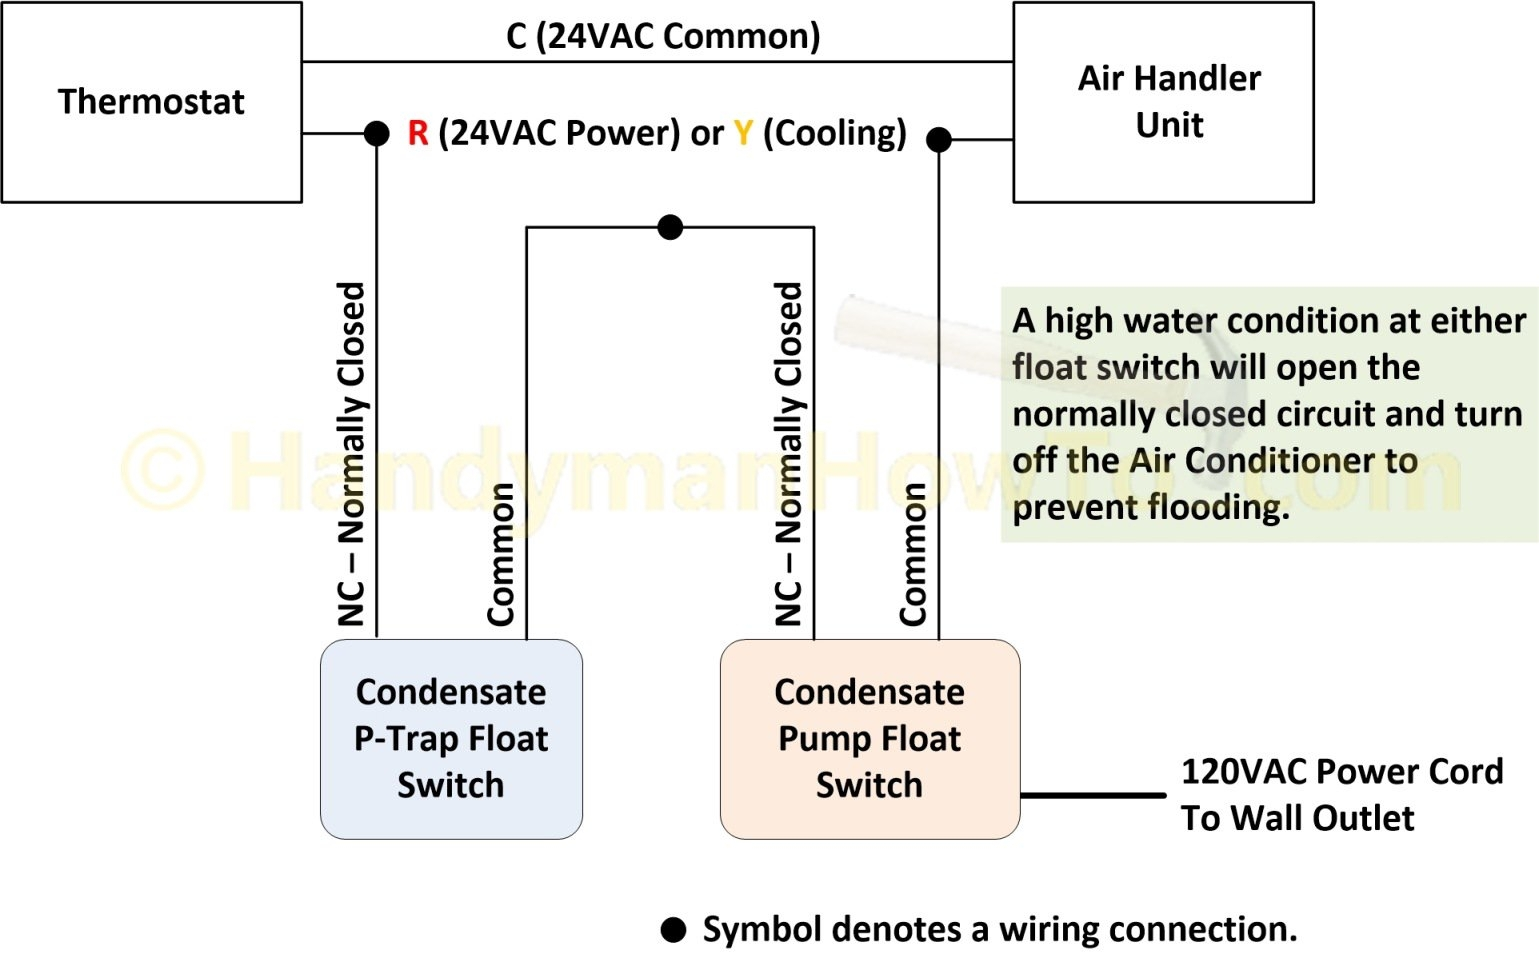 red lion pump wiring diagram Collection-Red Lion Pump Wiring Diagram Air Conditioner P Trap Float Switch and Condensate Pump Wiring 14-c